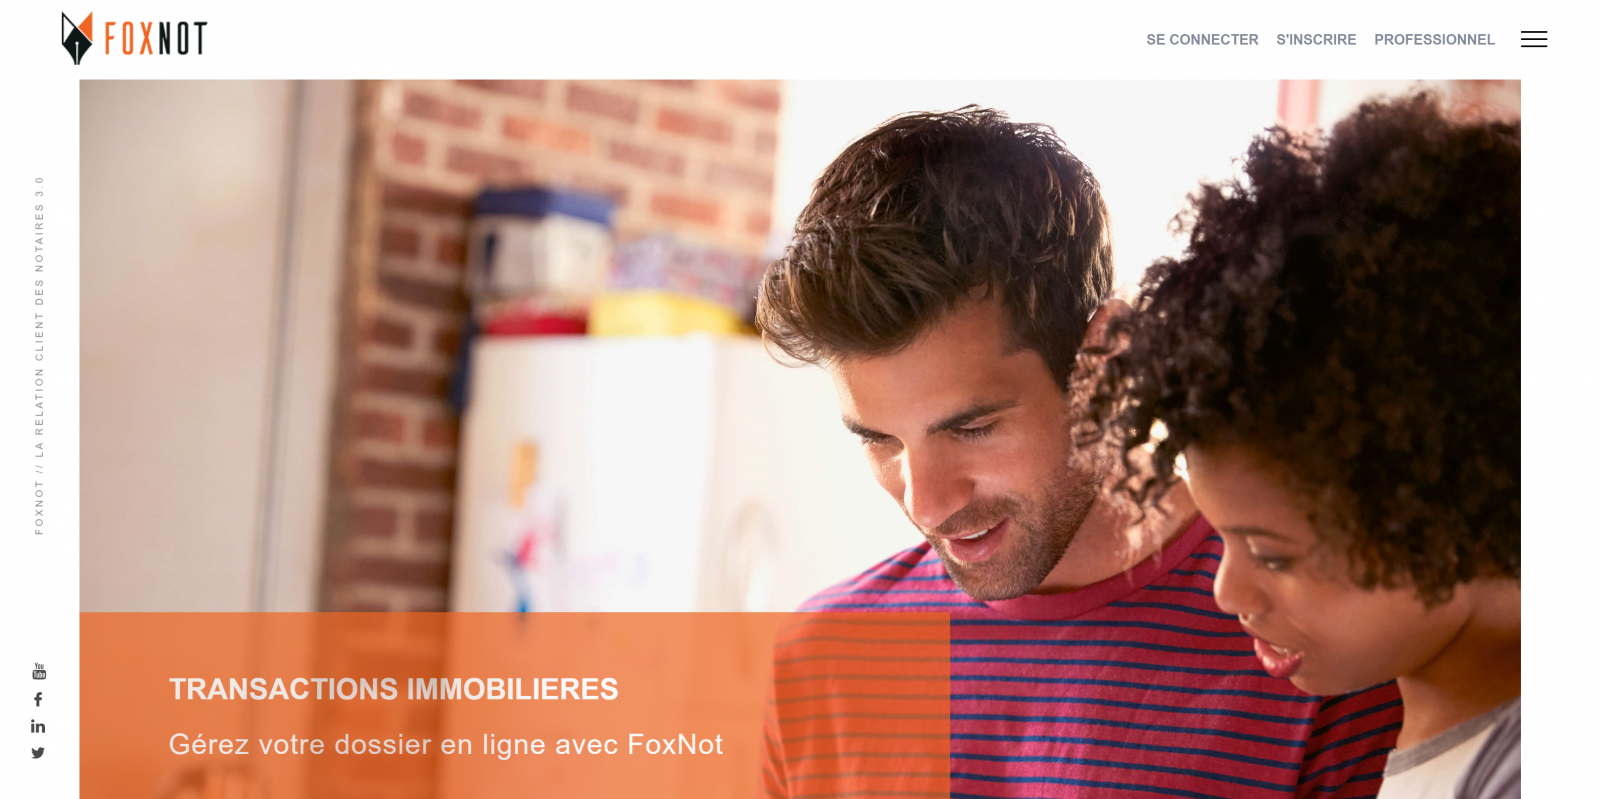 Foxnot startup proptech La Reserve immobilier 2.0